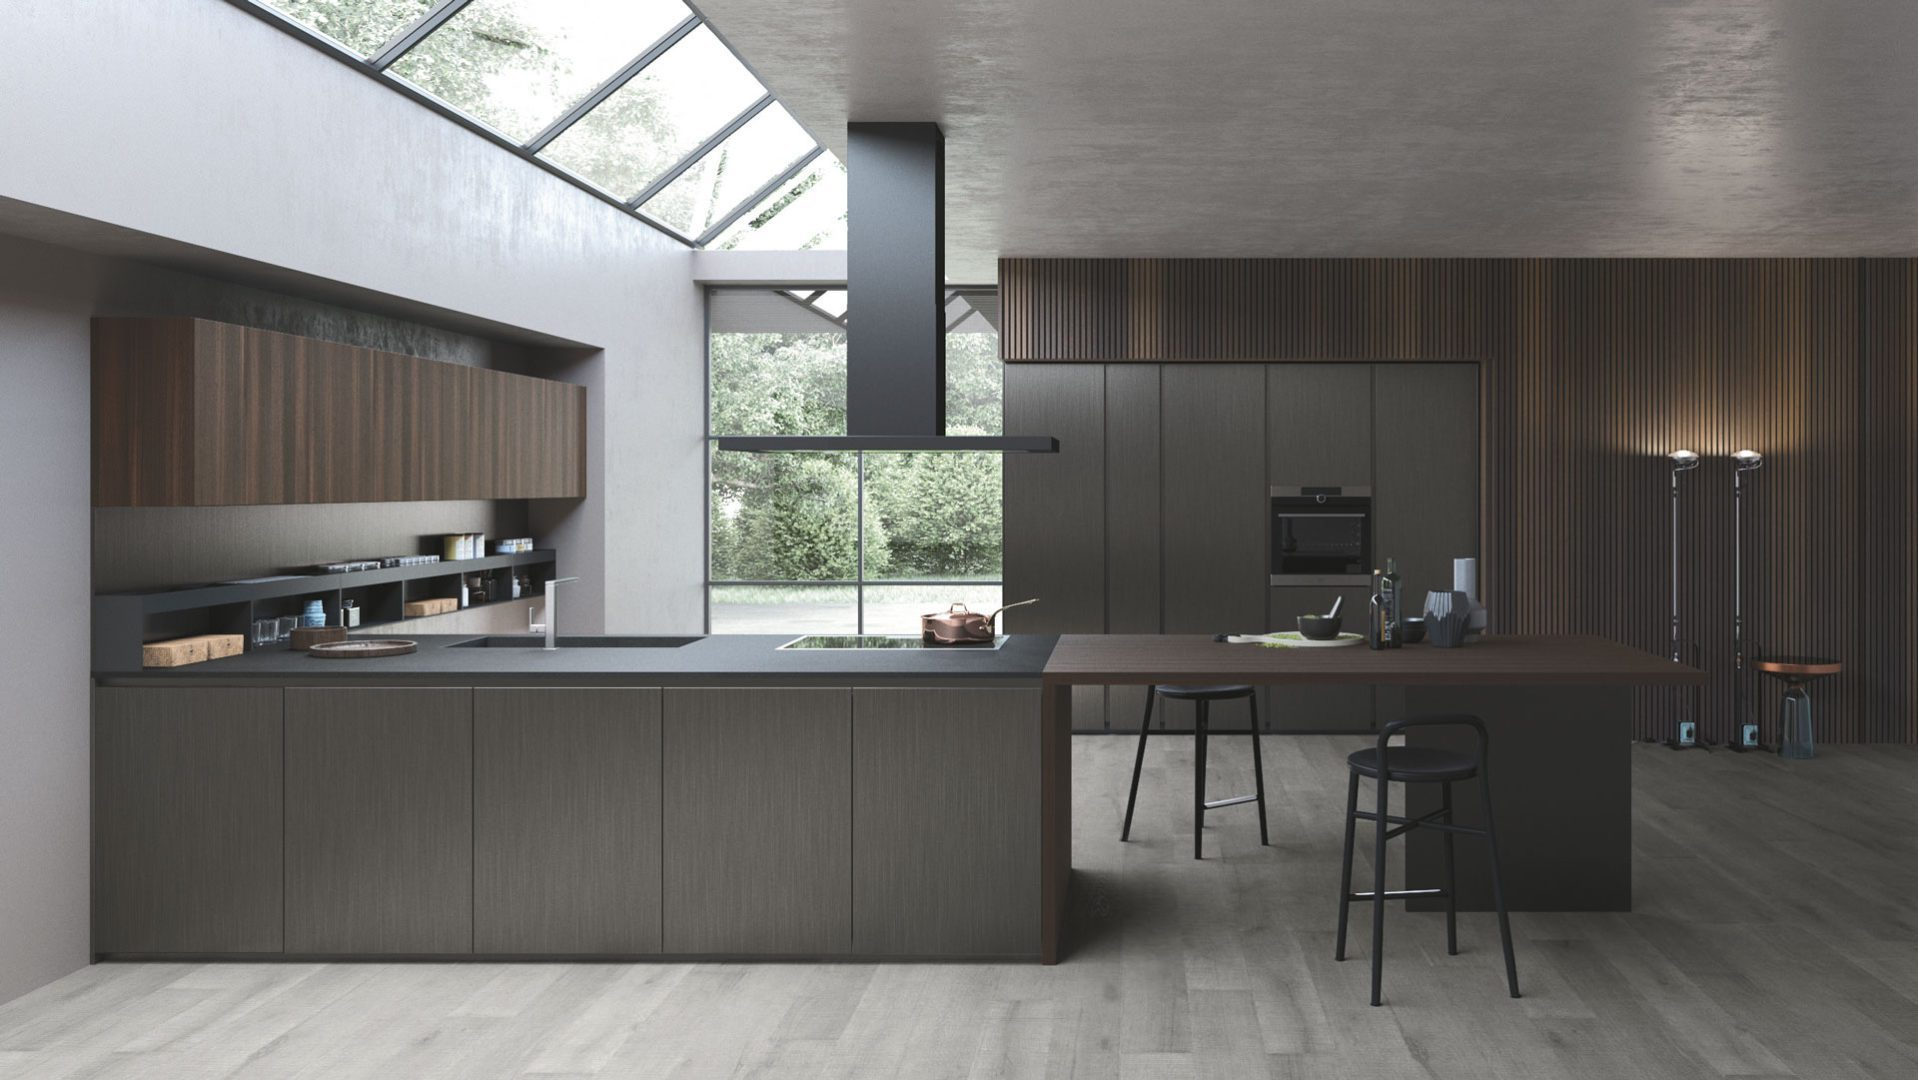 Stupendous Kitchens Pedini Usa Collections Download Free Architecture Designs Xaembritishbridgeorg